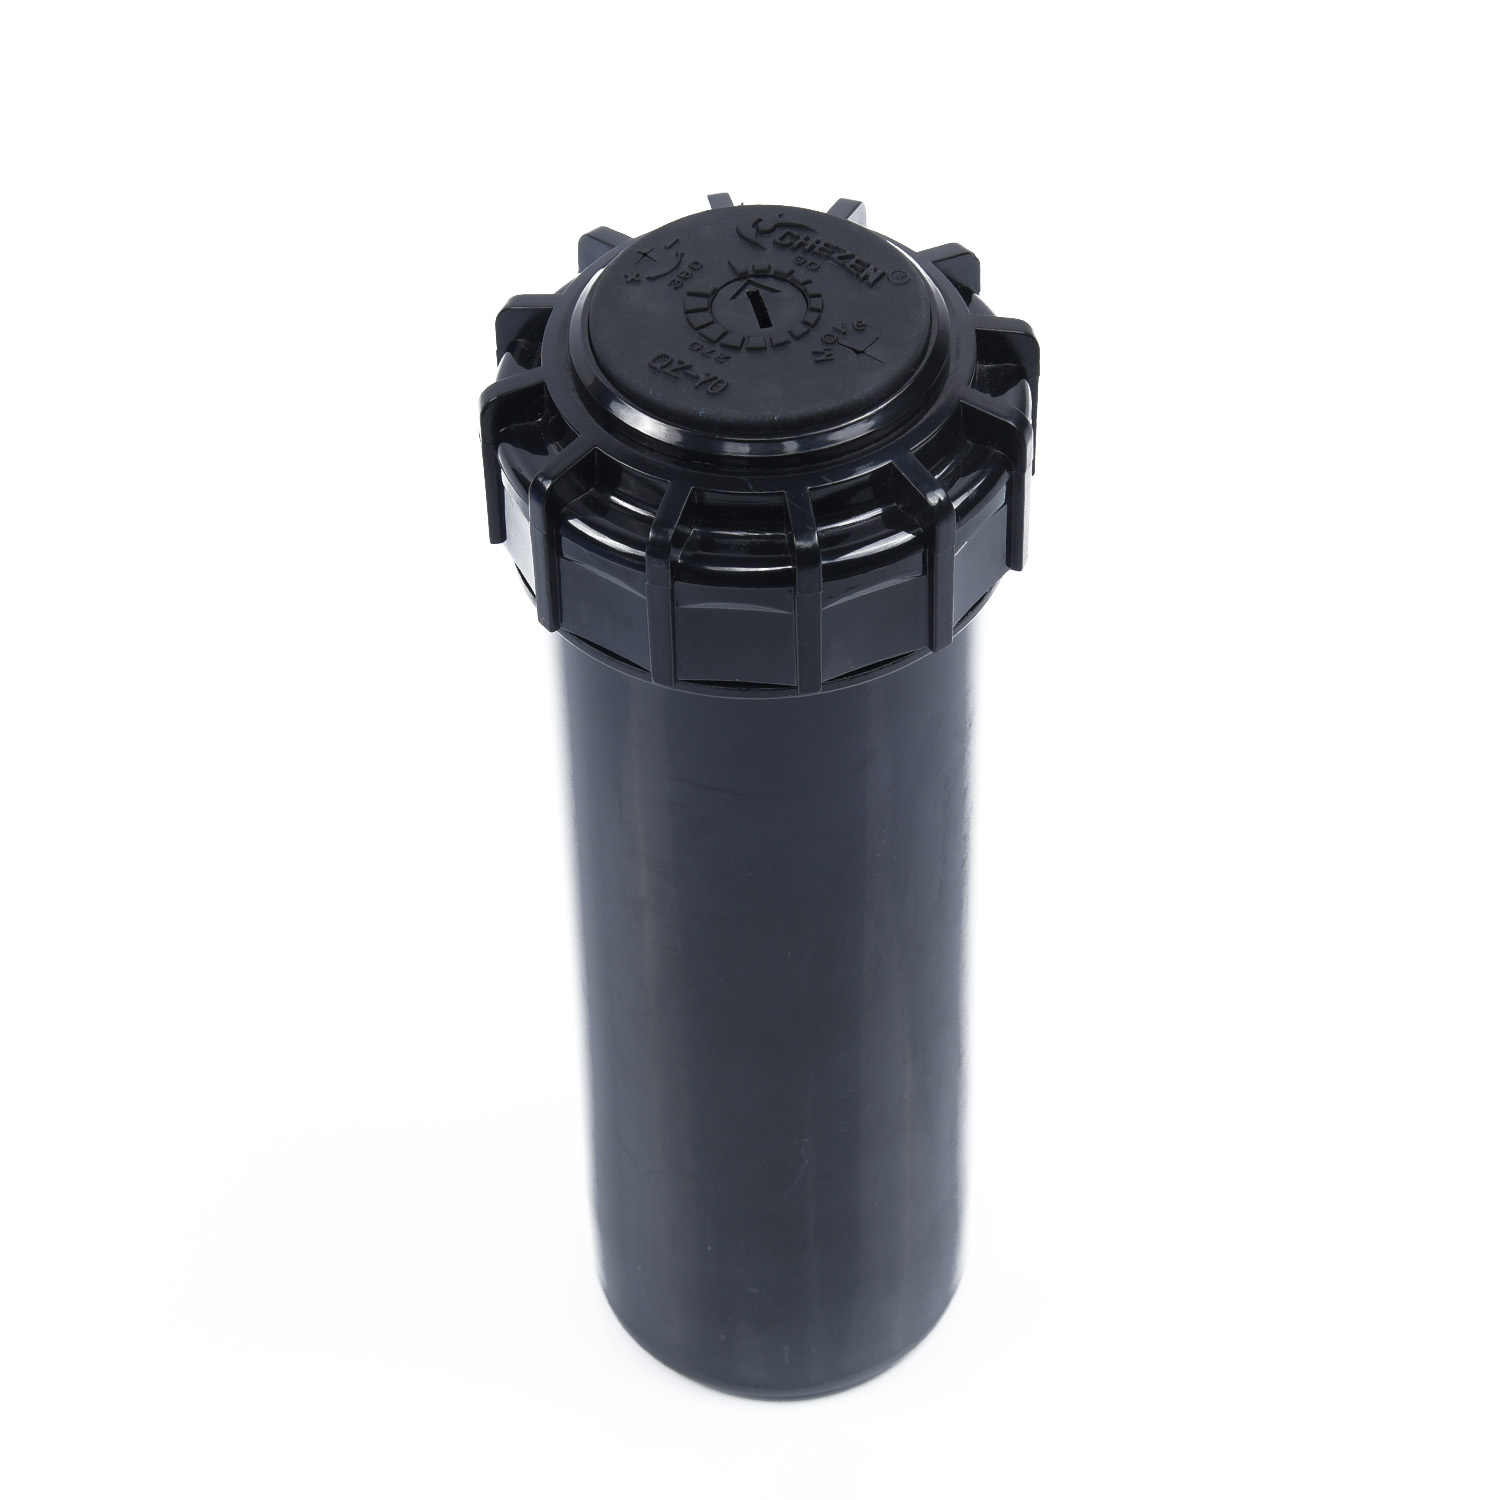 "Sprinkler Black Underground Lawn 40-360 Degree Water Garden Nozzle Greenhouse Automatic 3/4 inch 3/4"" Watering"